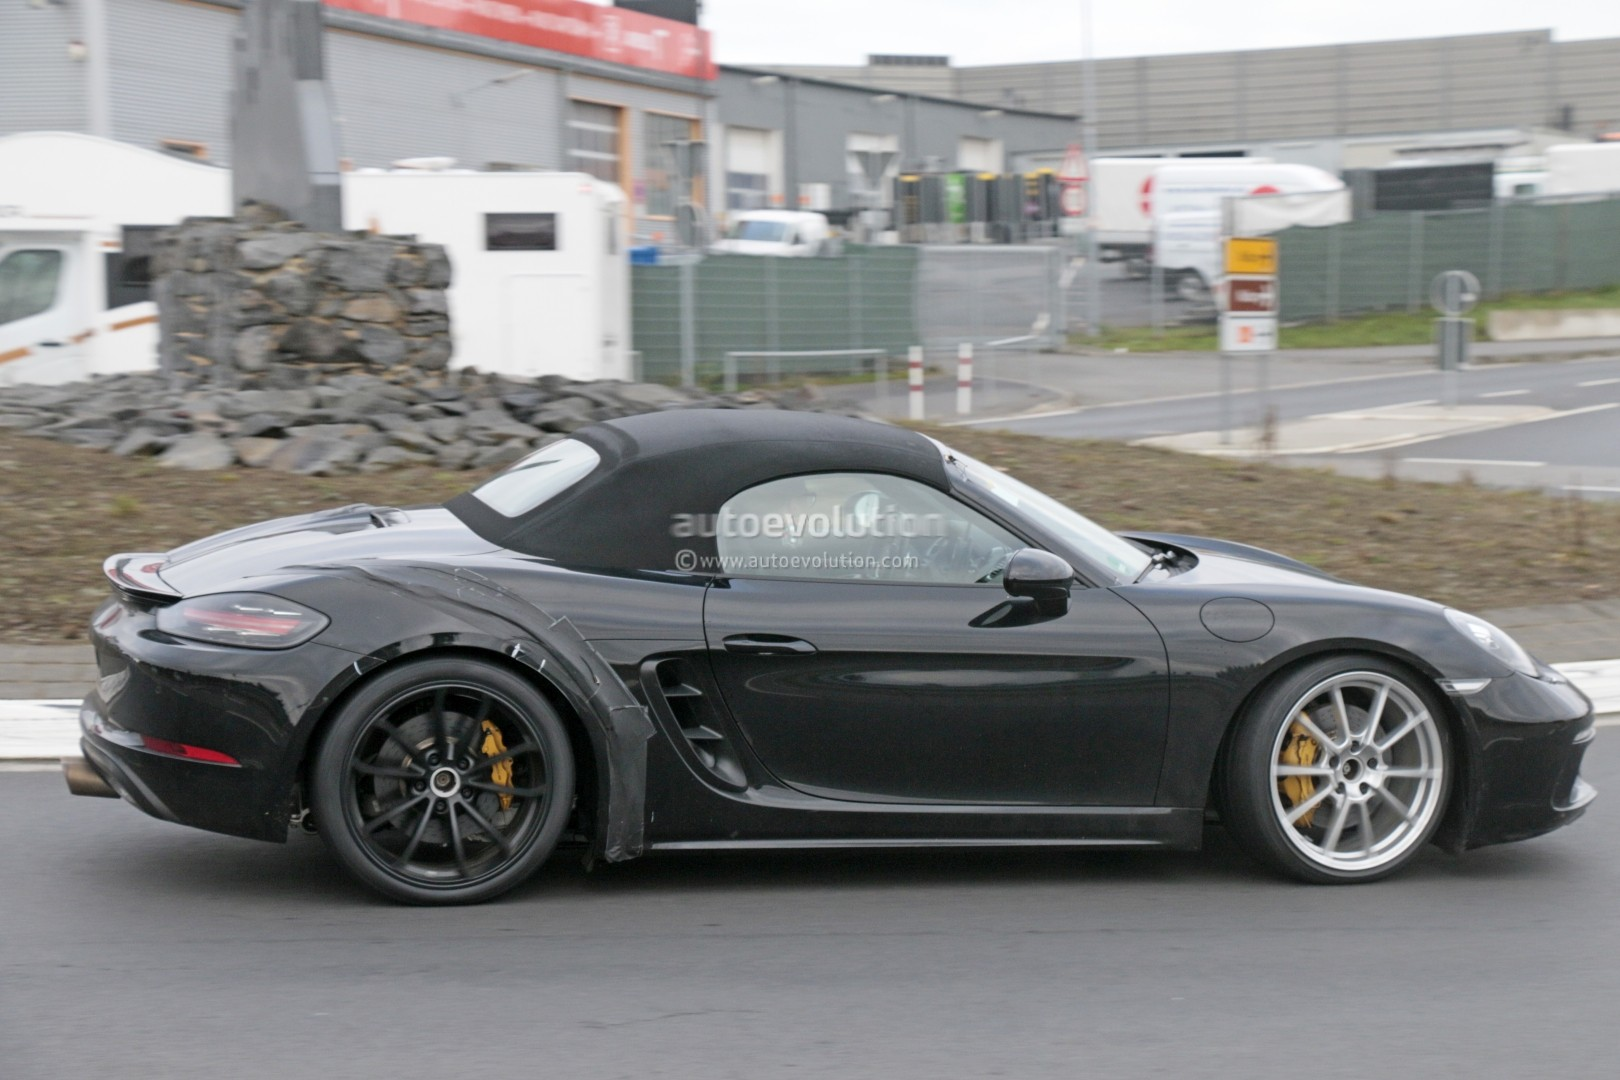 Be Turbo 2018 Porsche 718 Boxster Gts Makes Spyshot Debut To Be A